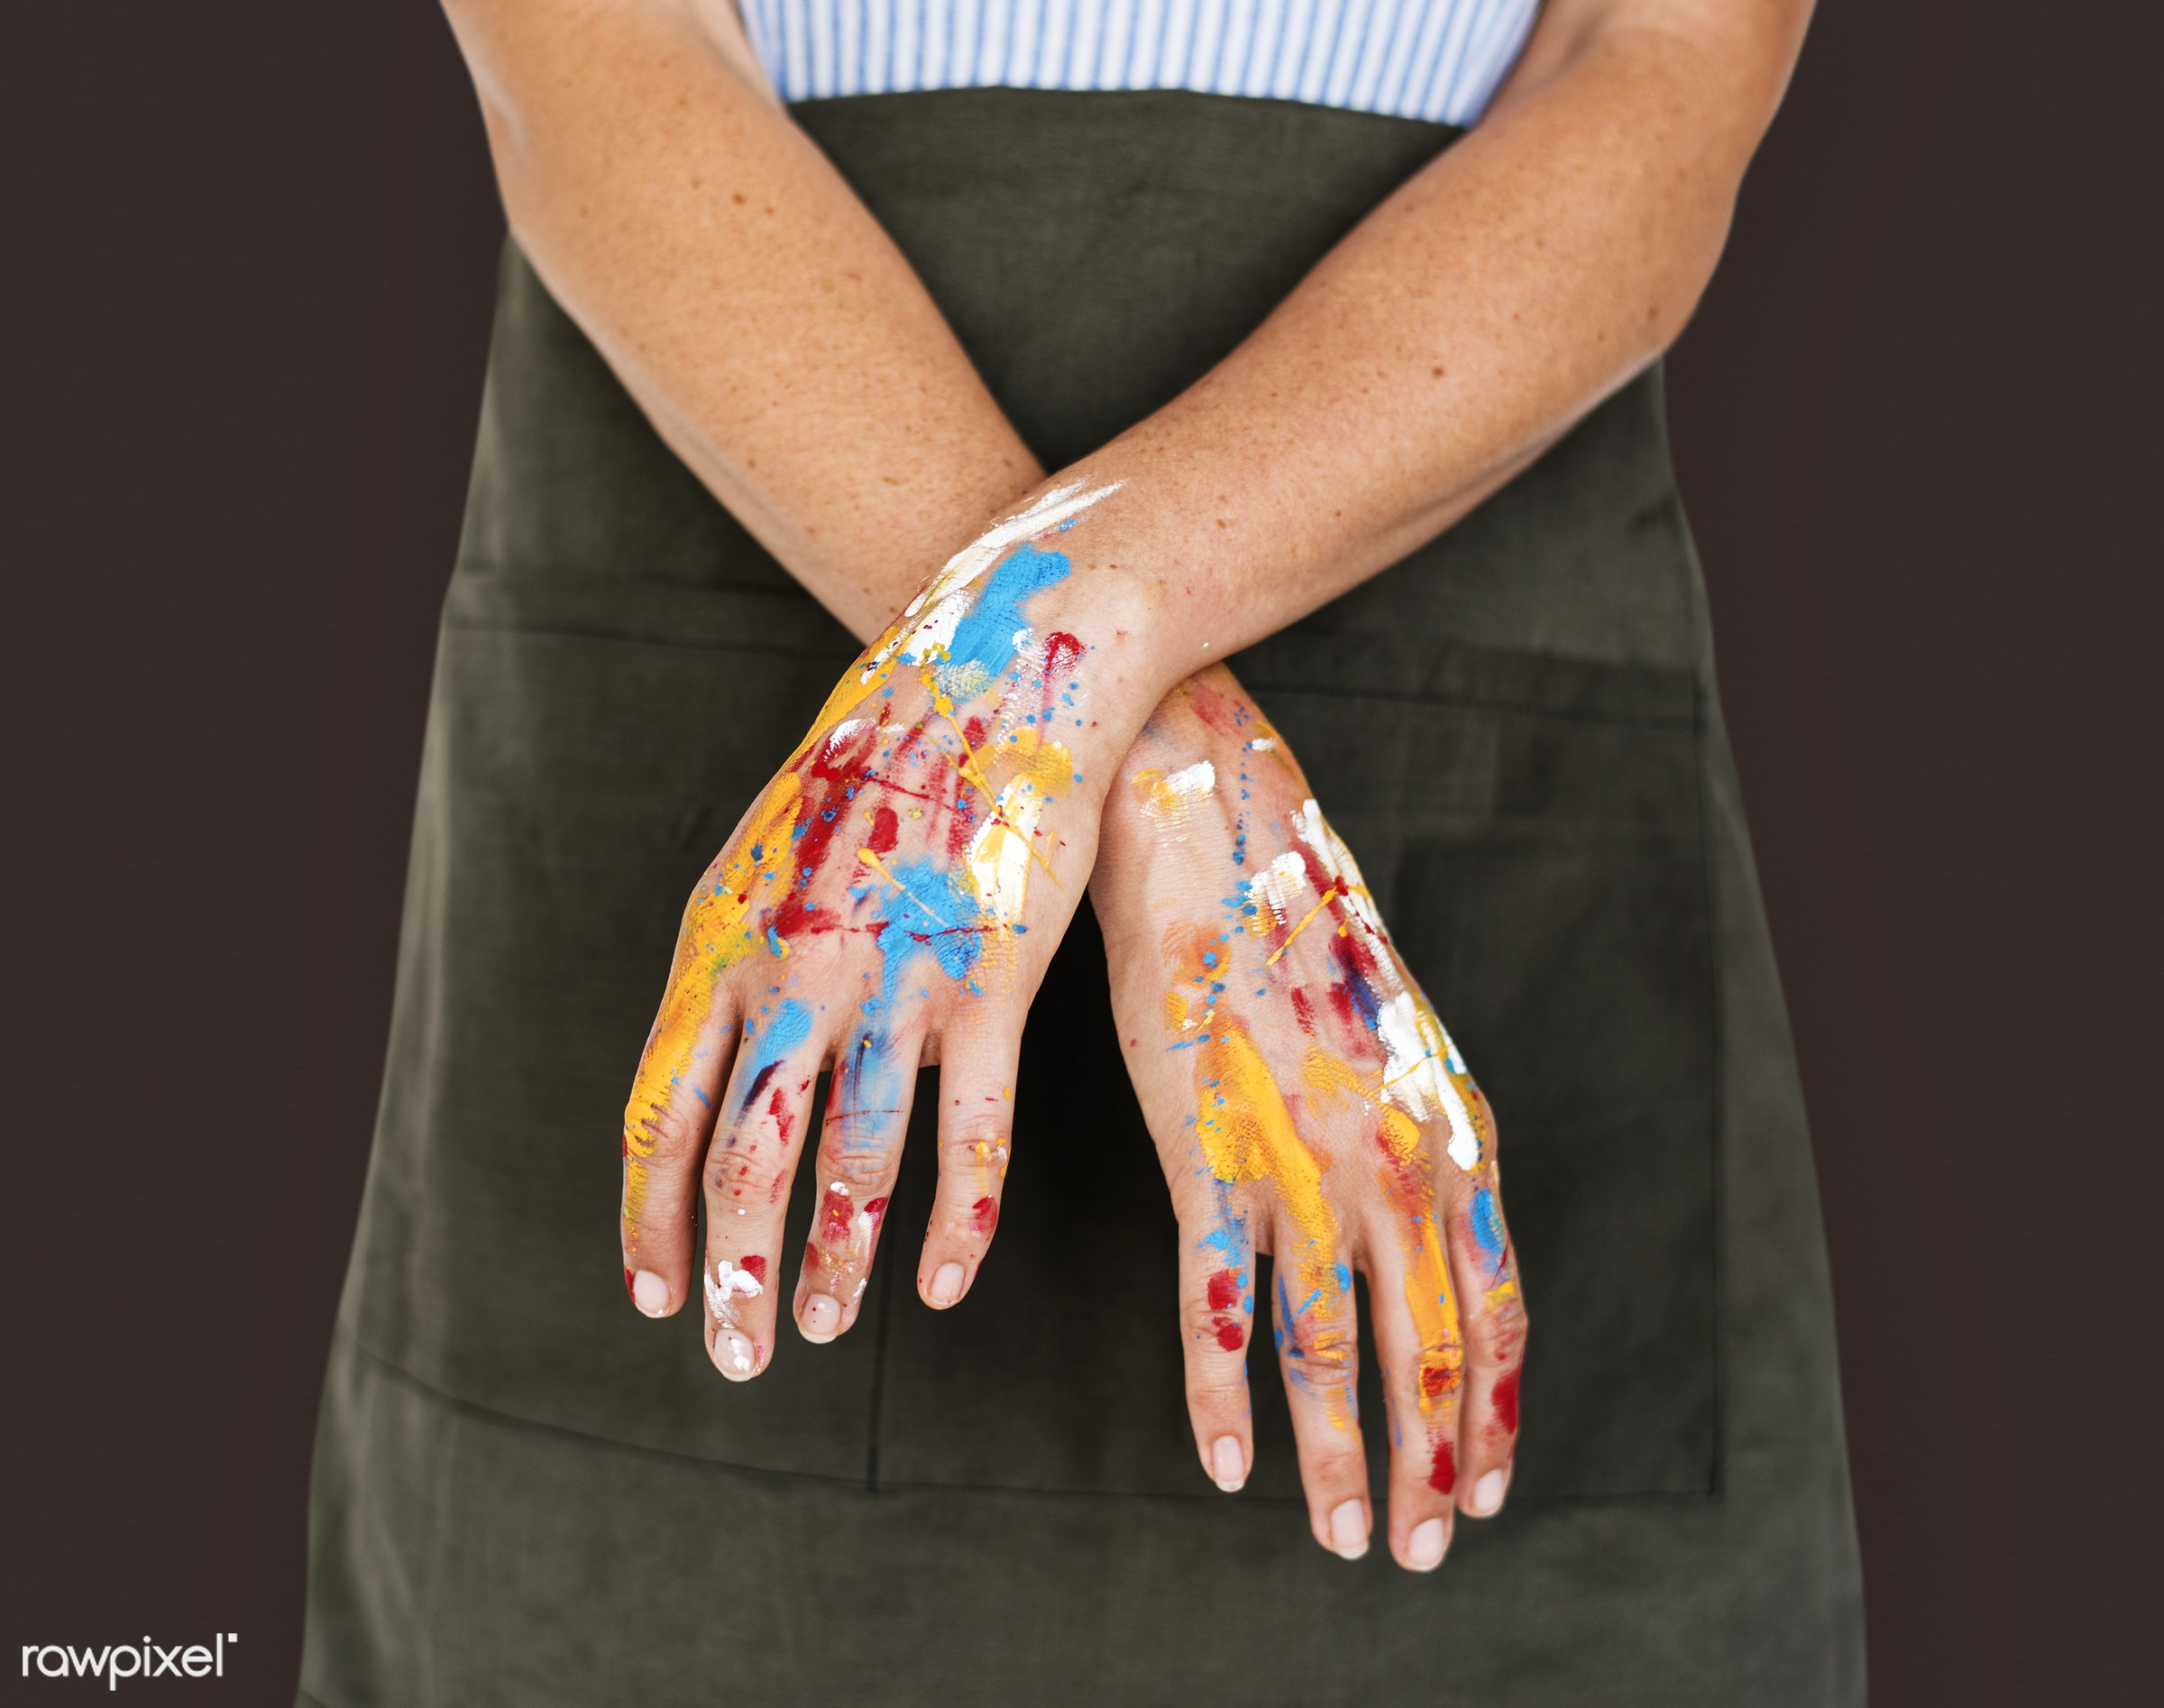 studio, person, model, race, people, style, solo, woman, casual, lifestyle, feminism, isolated, gesture, paint, posing,...